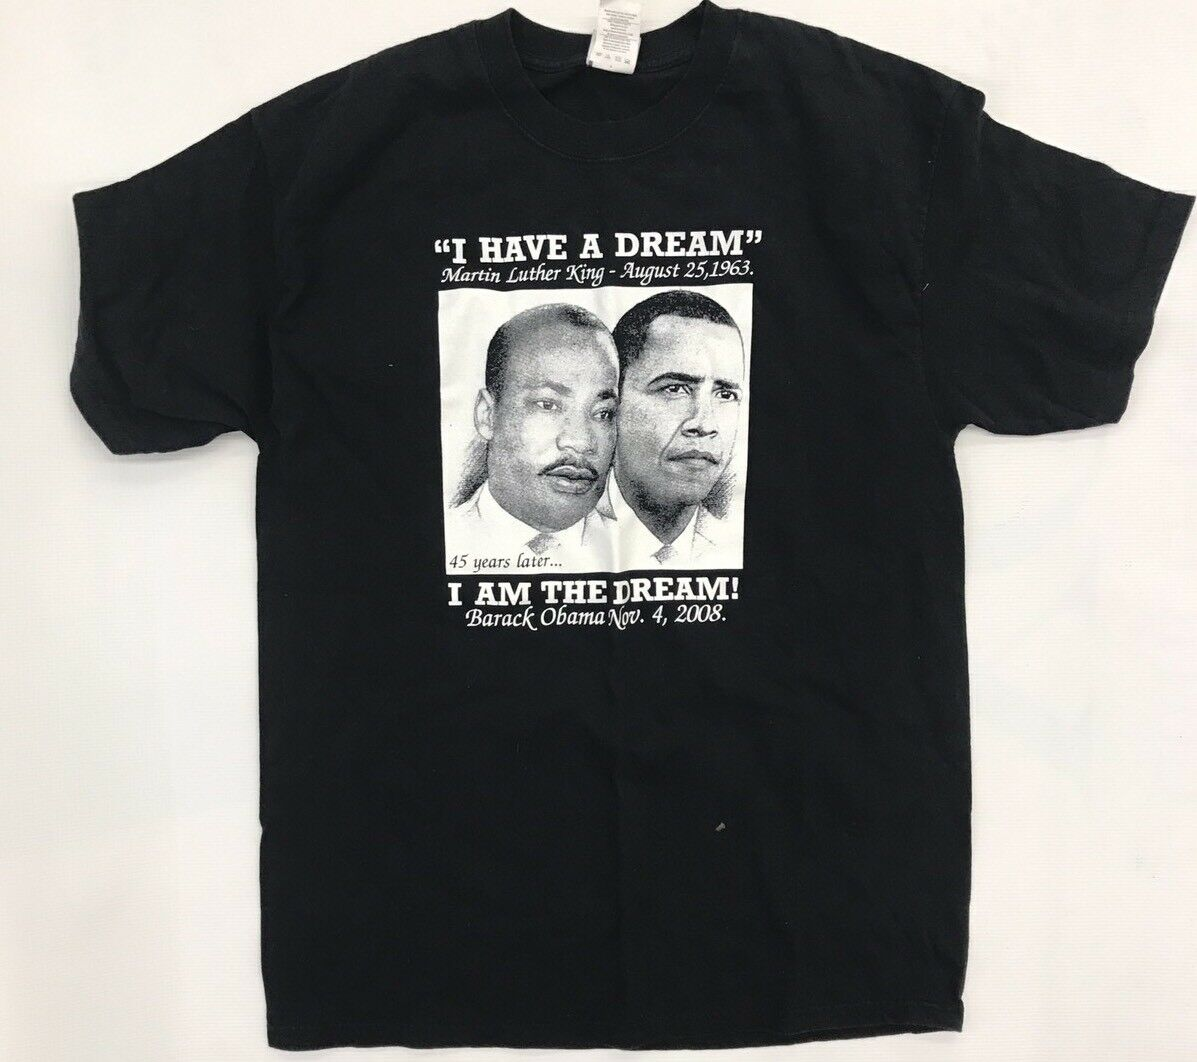 Worn Men's I Have a Dream Martin Luther King T Shirt Size Large Obama